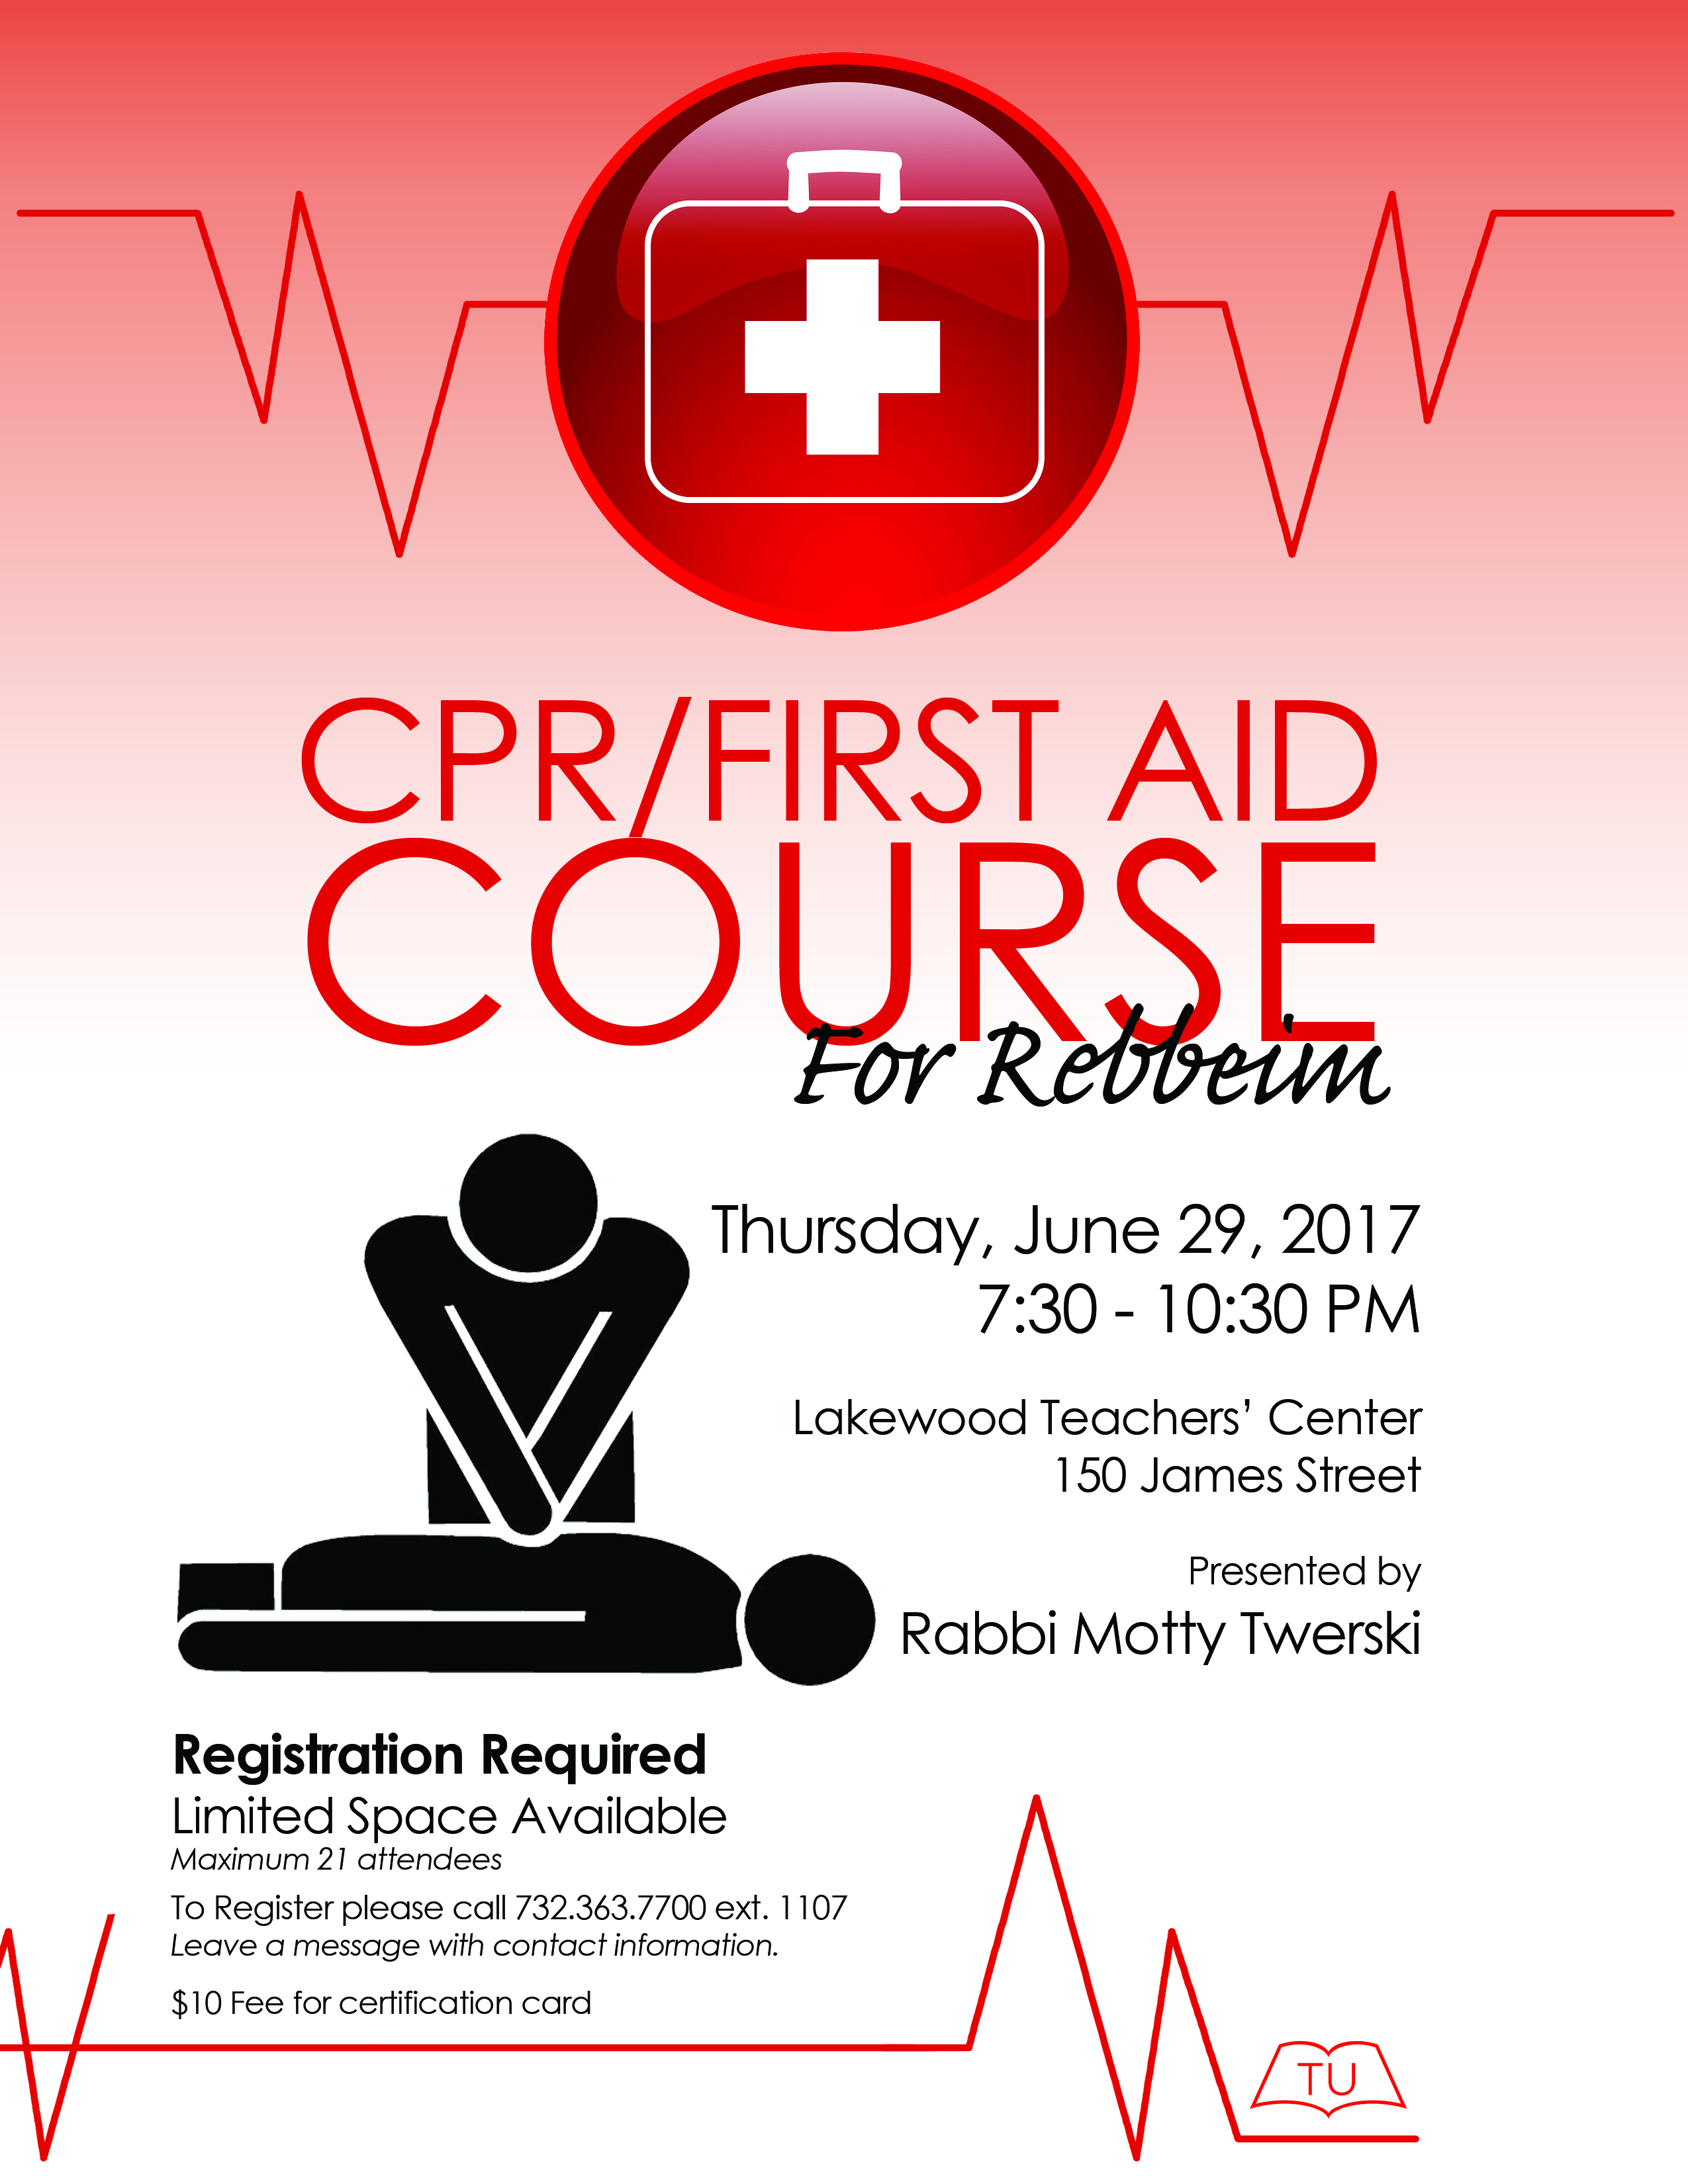 CPR - FIRST AID COURSE FOR LAKEWOOD REBBEIM